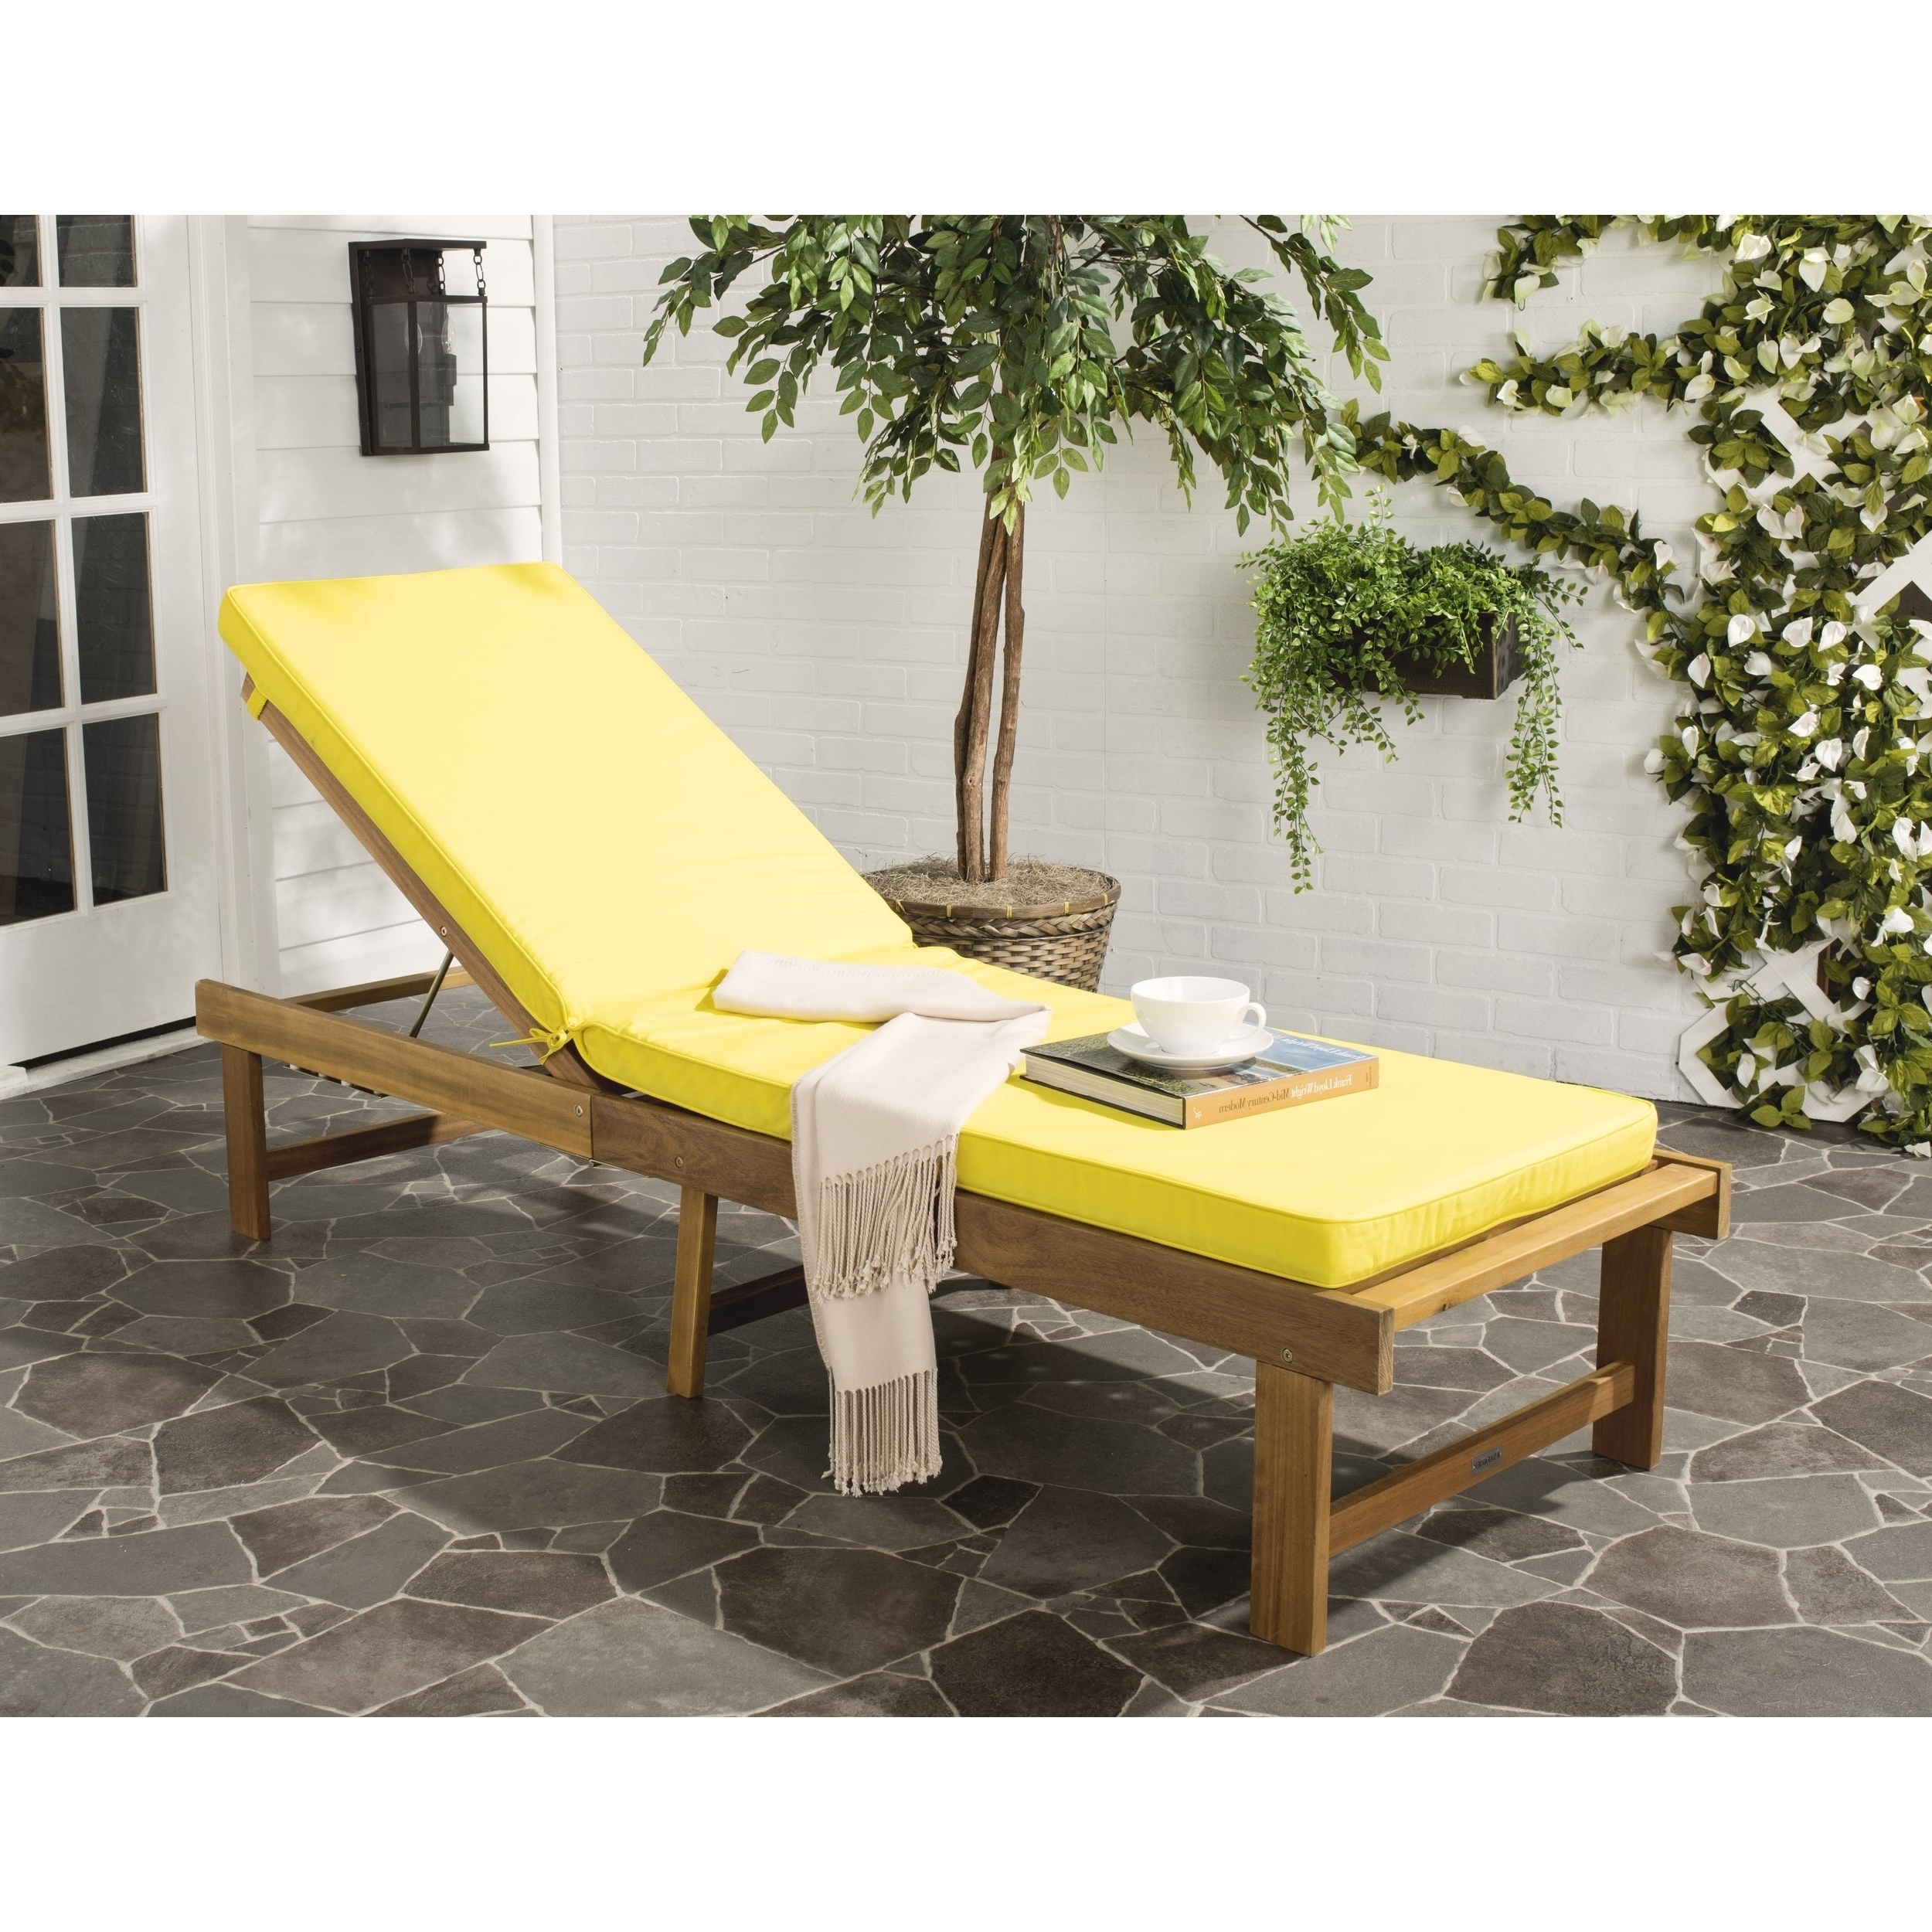 Details About Safavieh Inglewood Outdoor Brown/yellow Chaise Lounge Chair –  0 Pertaining To 2020 Outdoor Living Inglewood Brown Acacia Wood Beige Cushion Lounge Chairs (View 8 of 25)